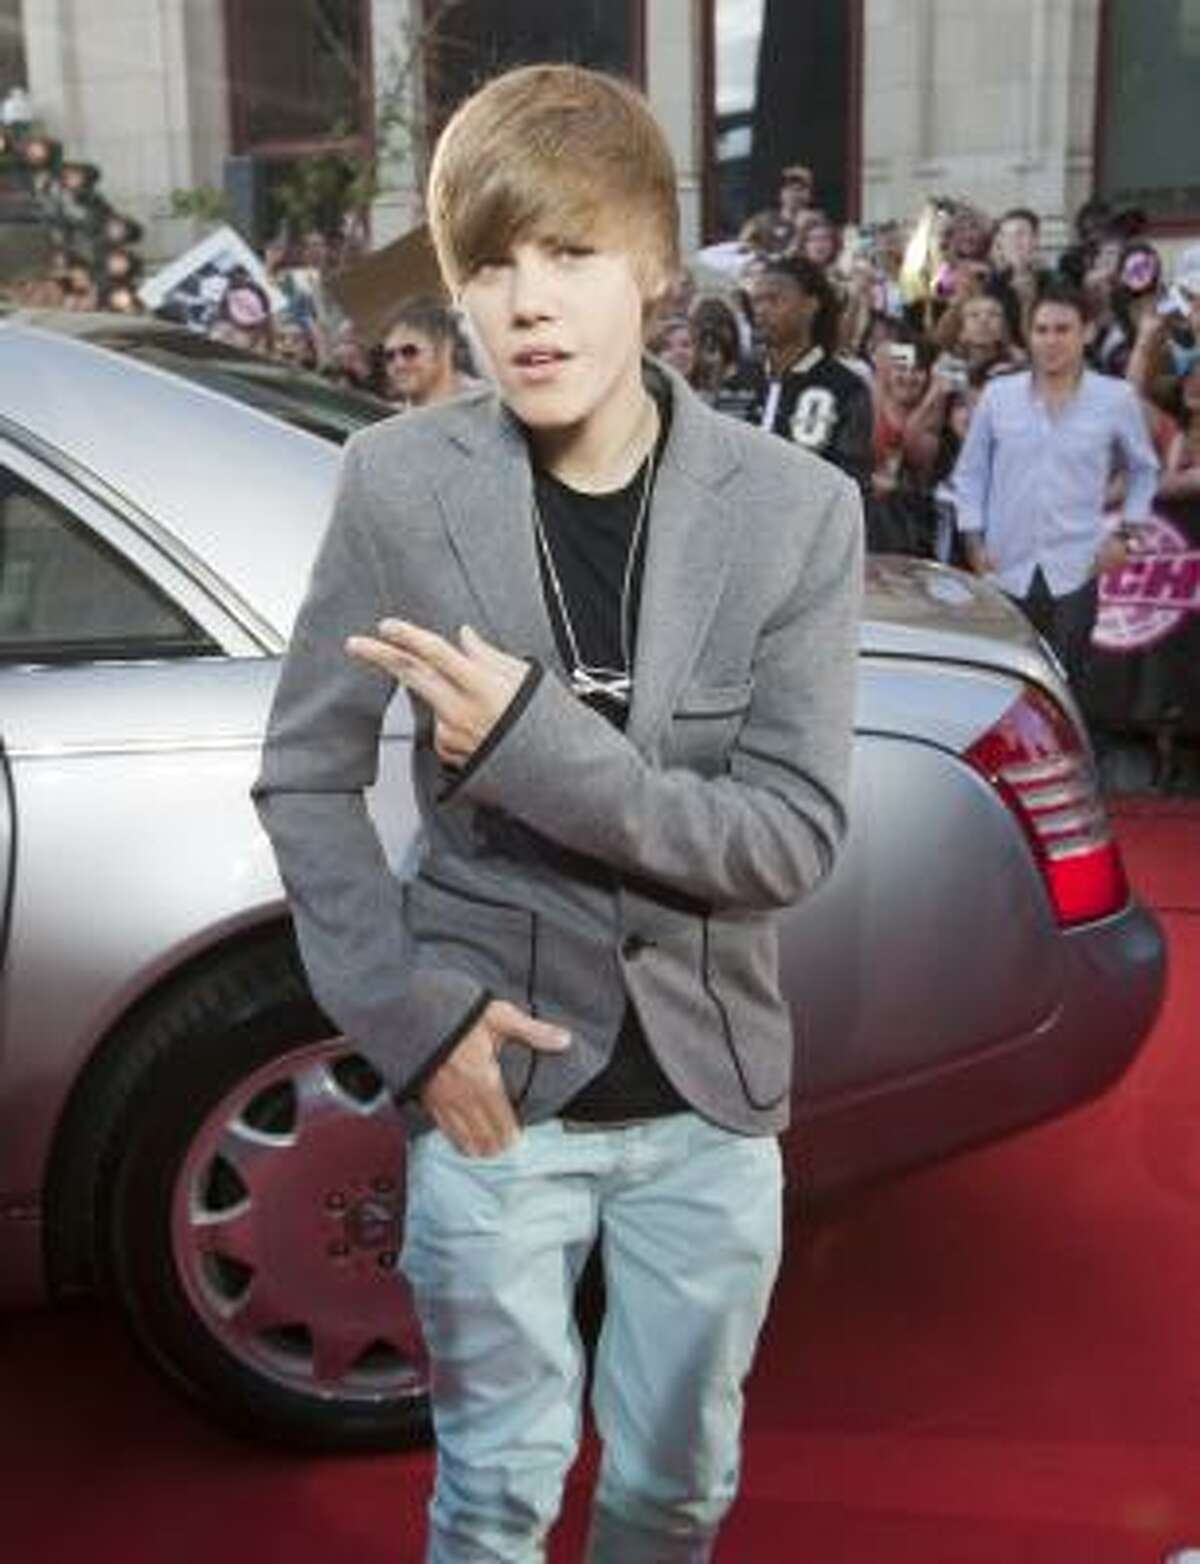 Pop singer Justin Bieber sports a tousled look that has created plenty of buzz.